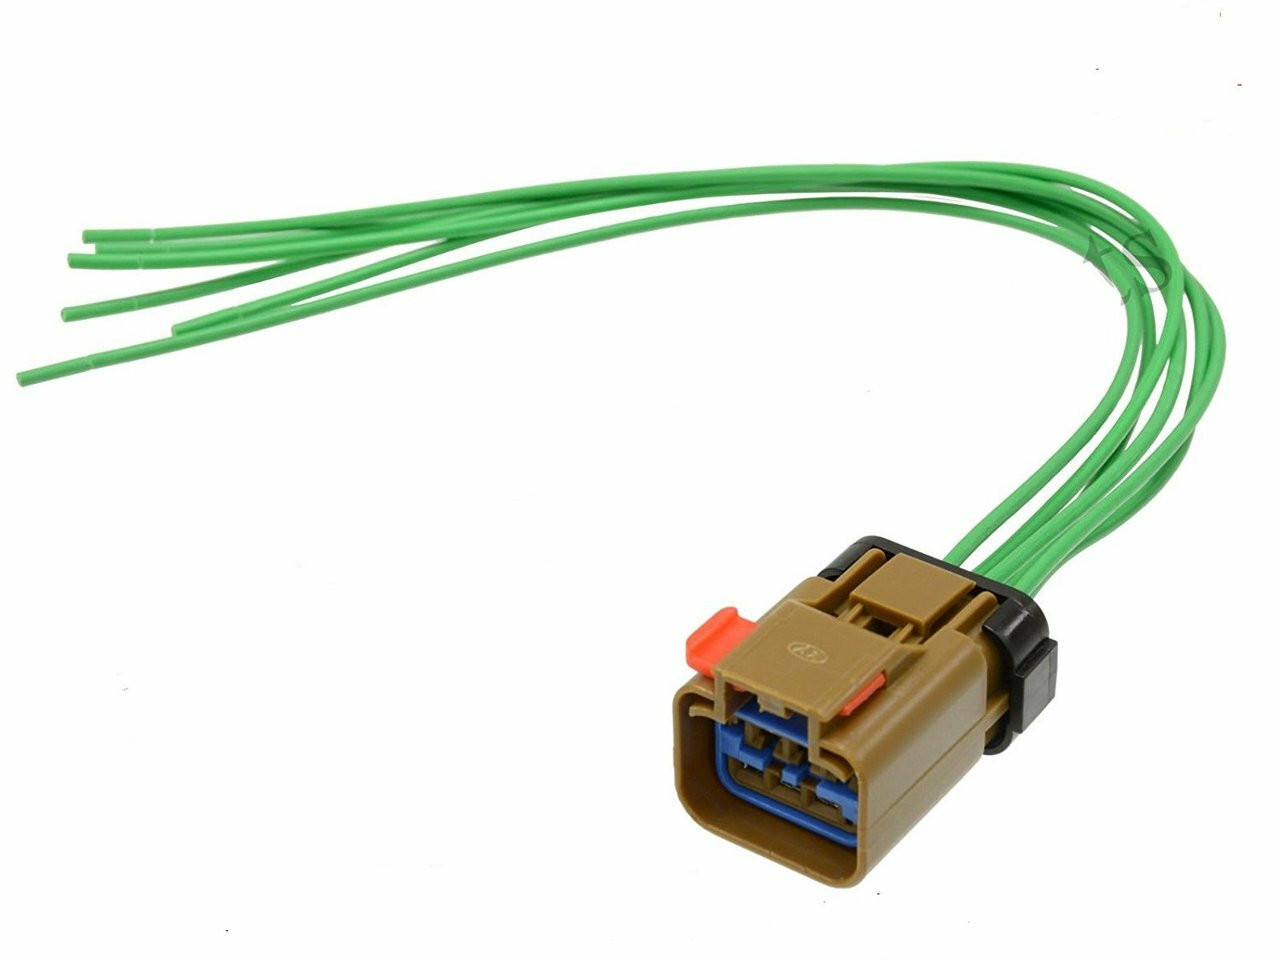 hight resolution of wiring harness pigtail connector kit repairs or replaces power chrysler wiring harness connectors jeep wiring connectors